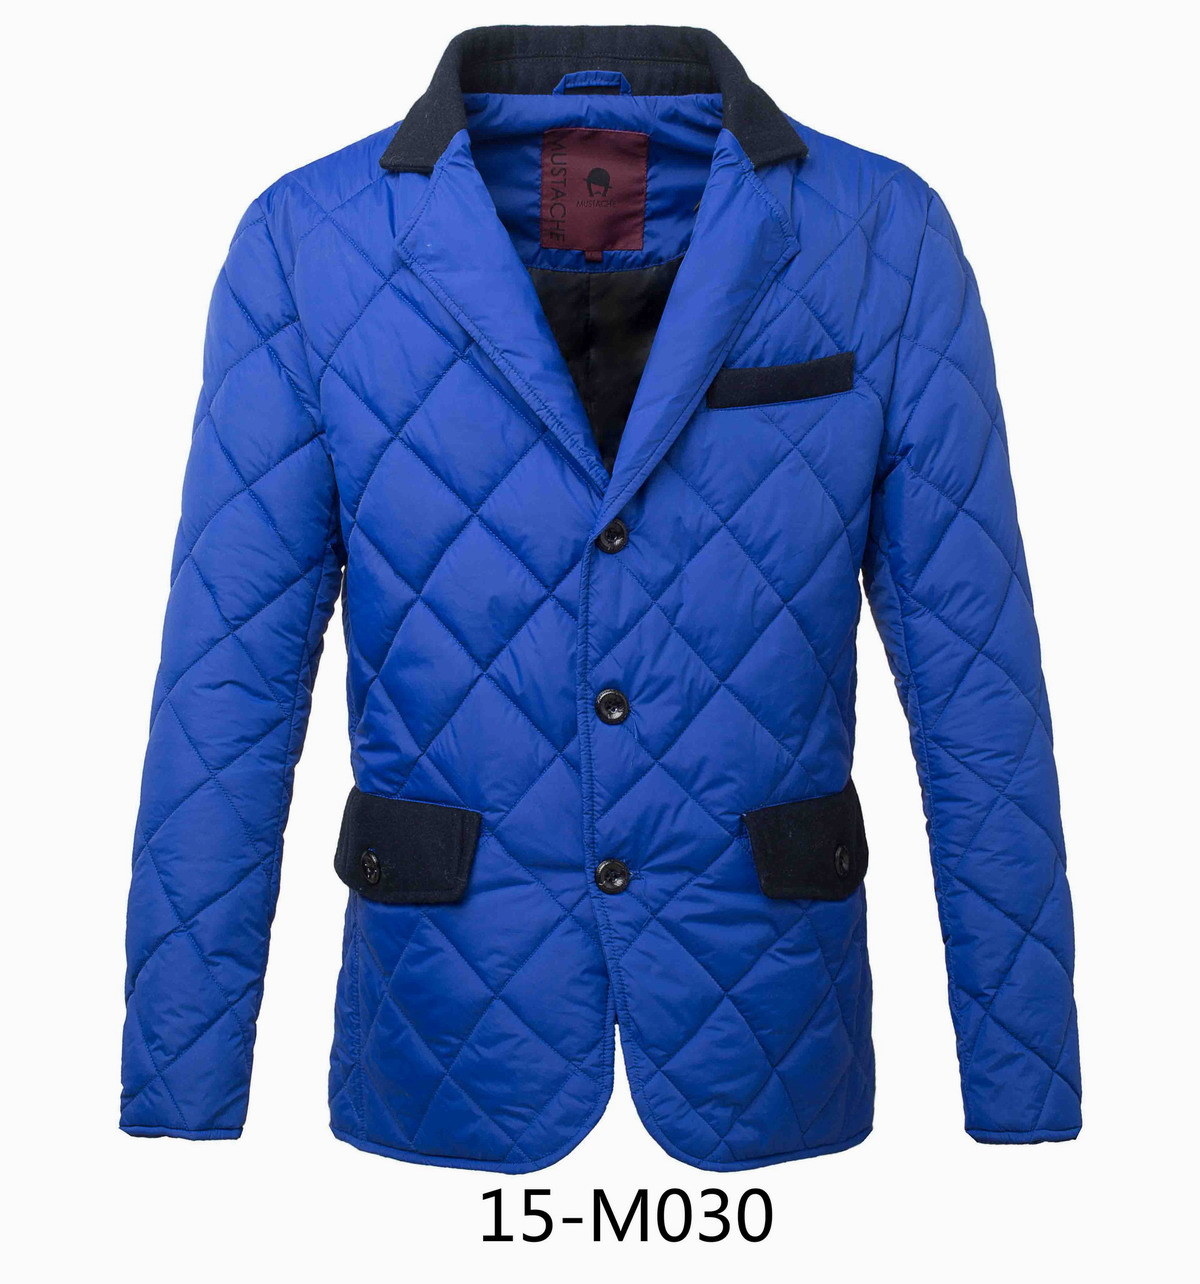 Men′s Quilted Casual Winter Suit (15-M030)